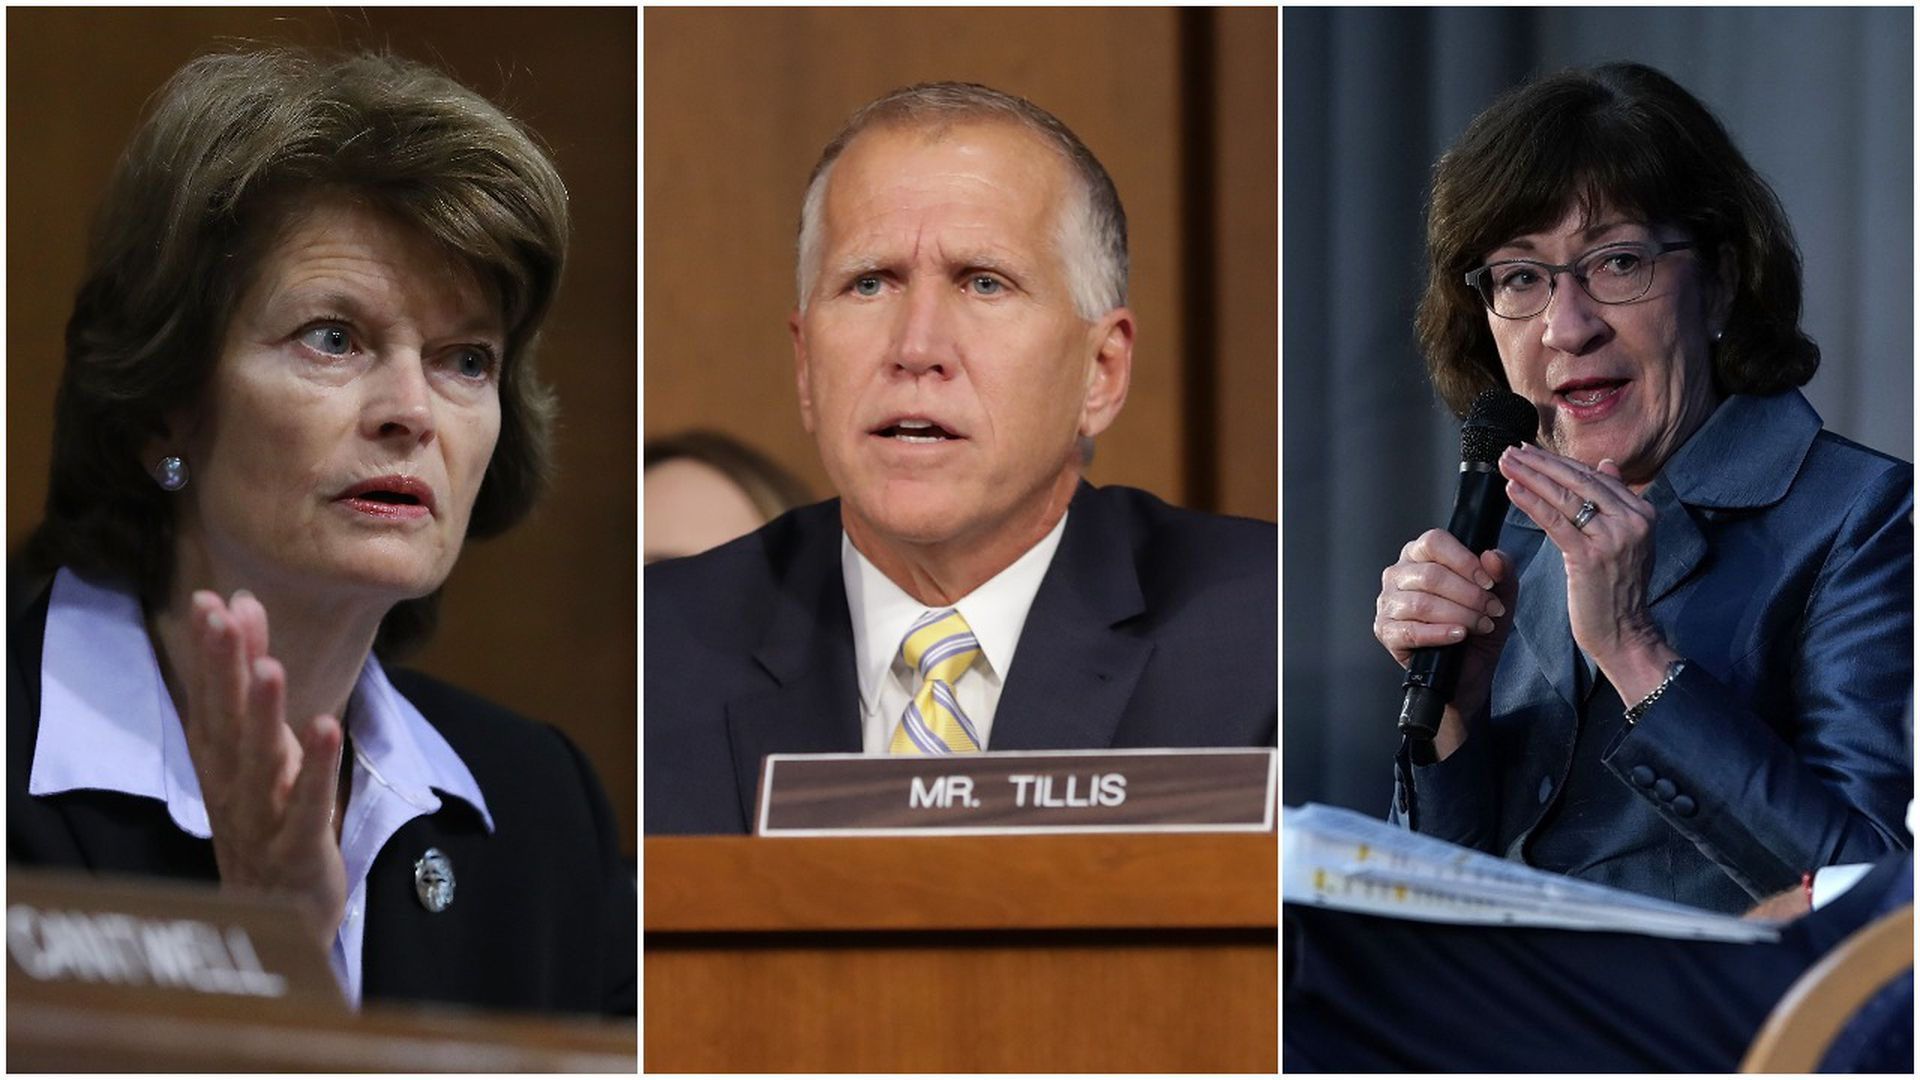 Murkowski, Tillis and Collins